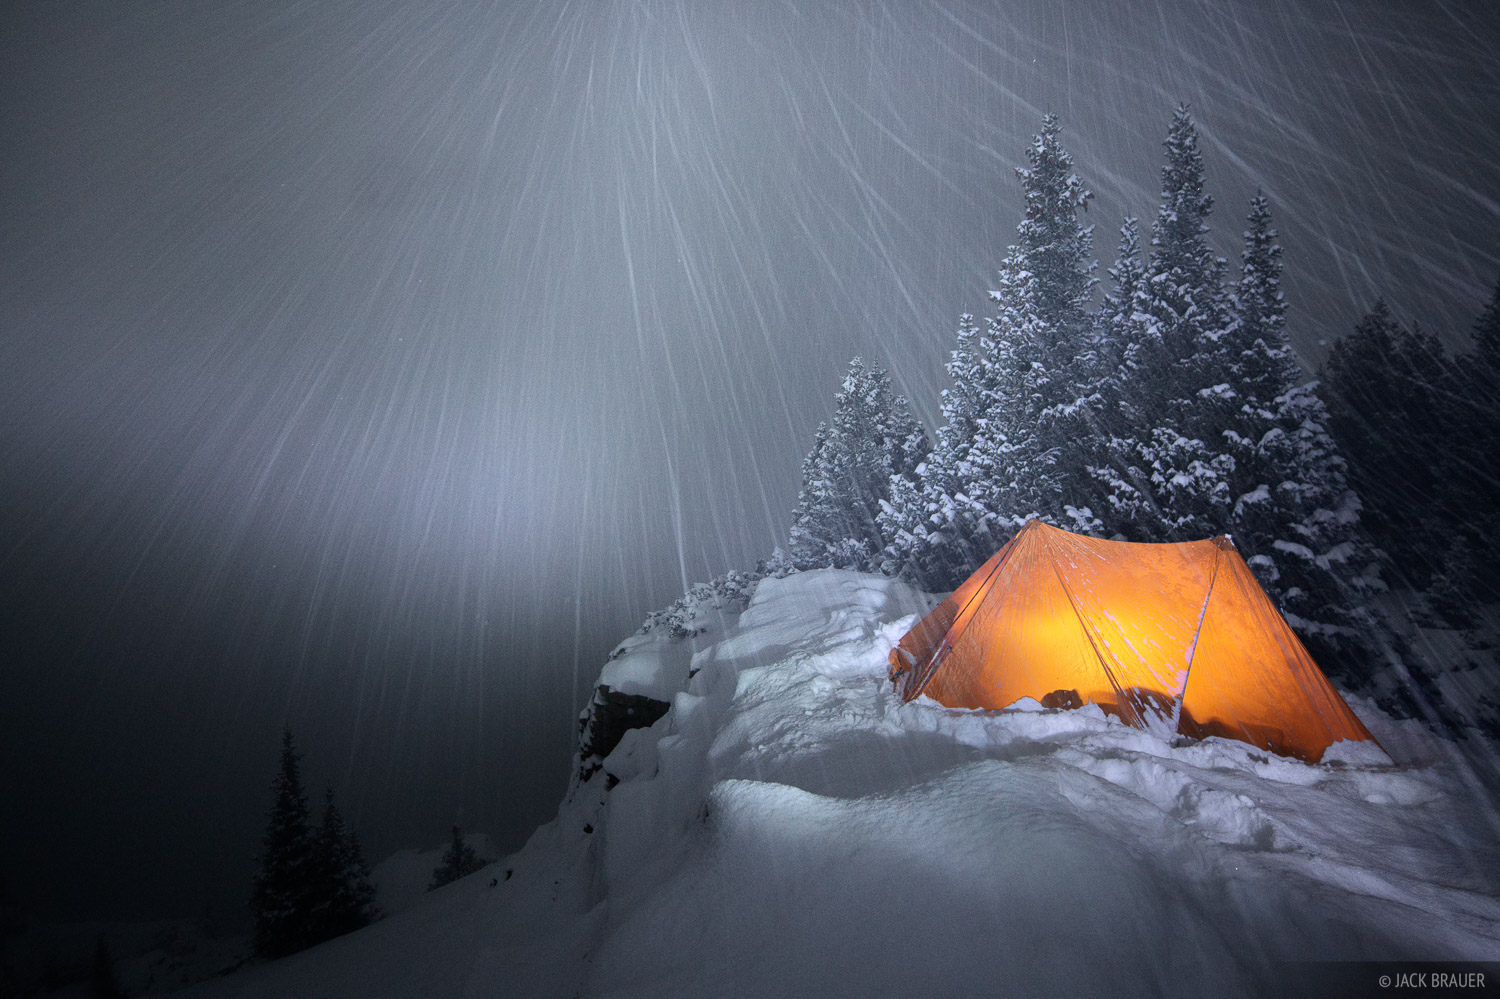 Sneffels, San Juan Mountains, Colorado, winter, camp, tent, snowy, photo